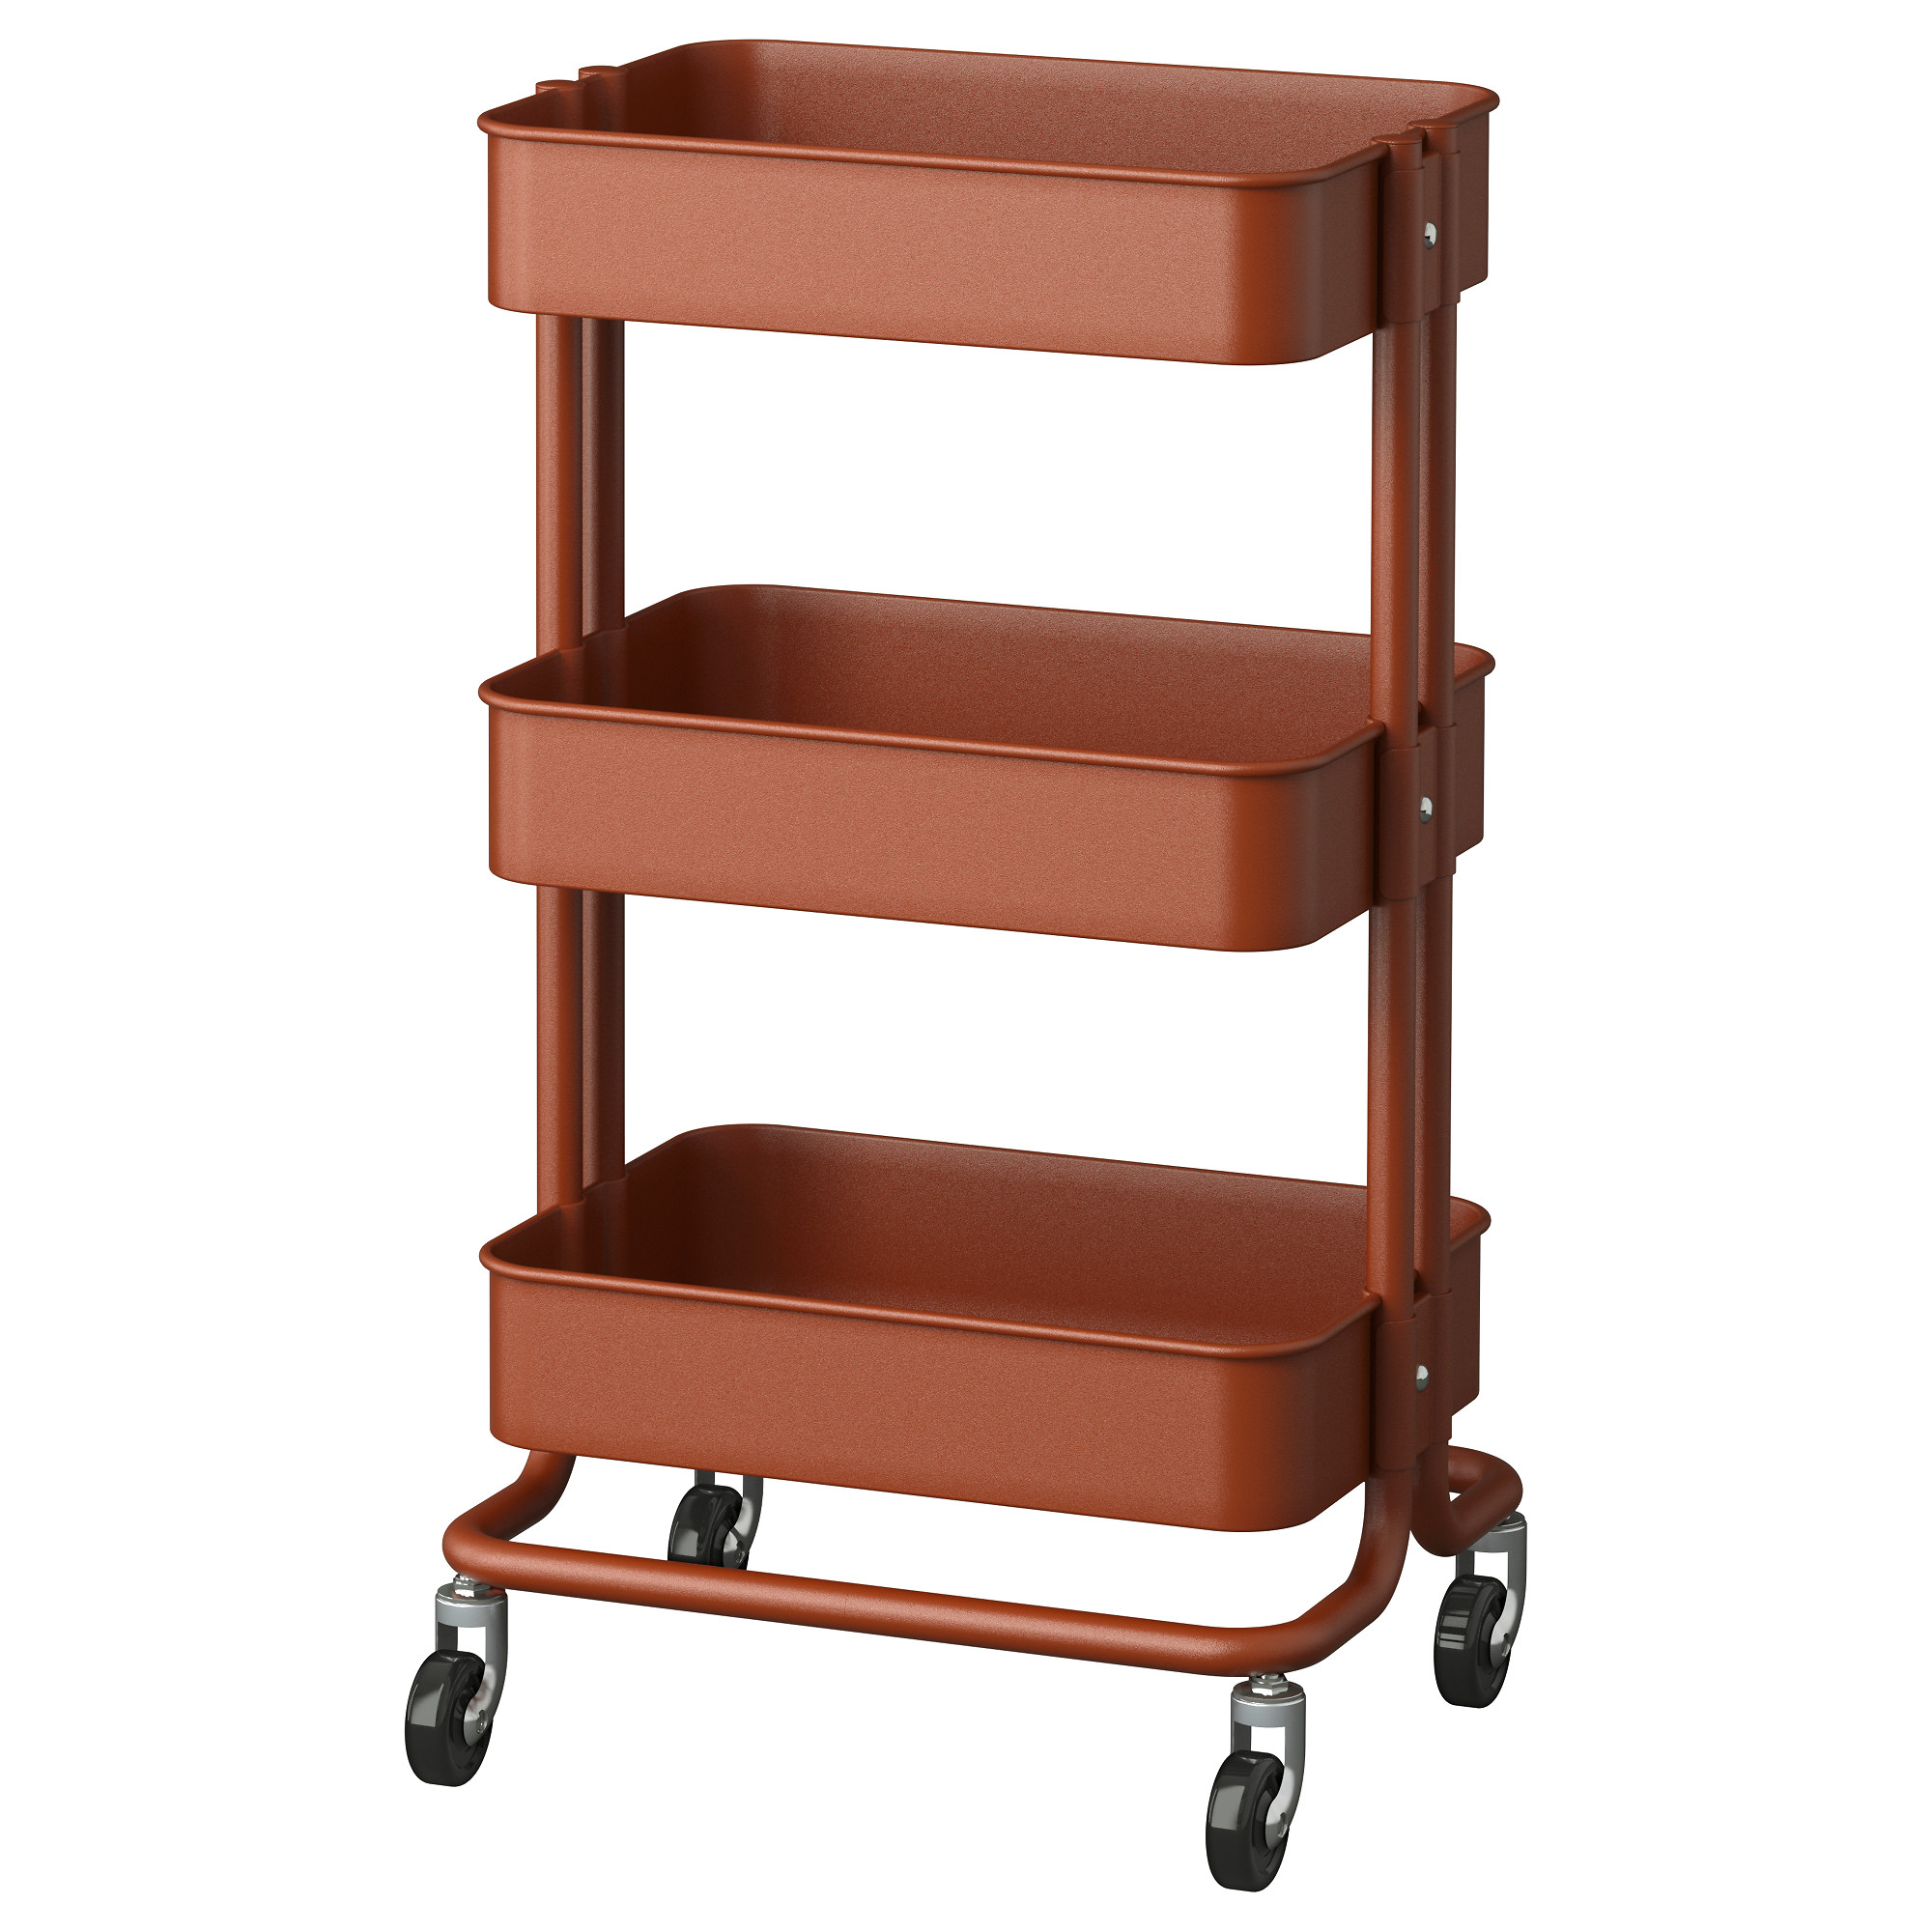 RÅSKOG Utility Cart, Red/brown Length: 13 3/4